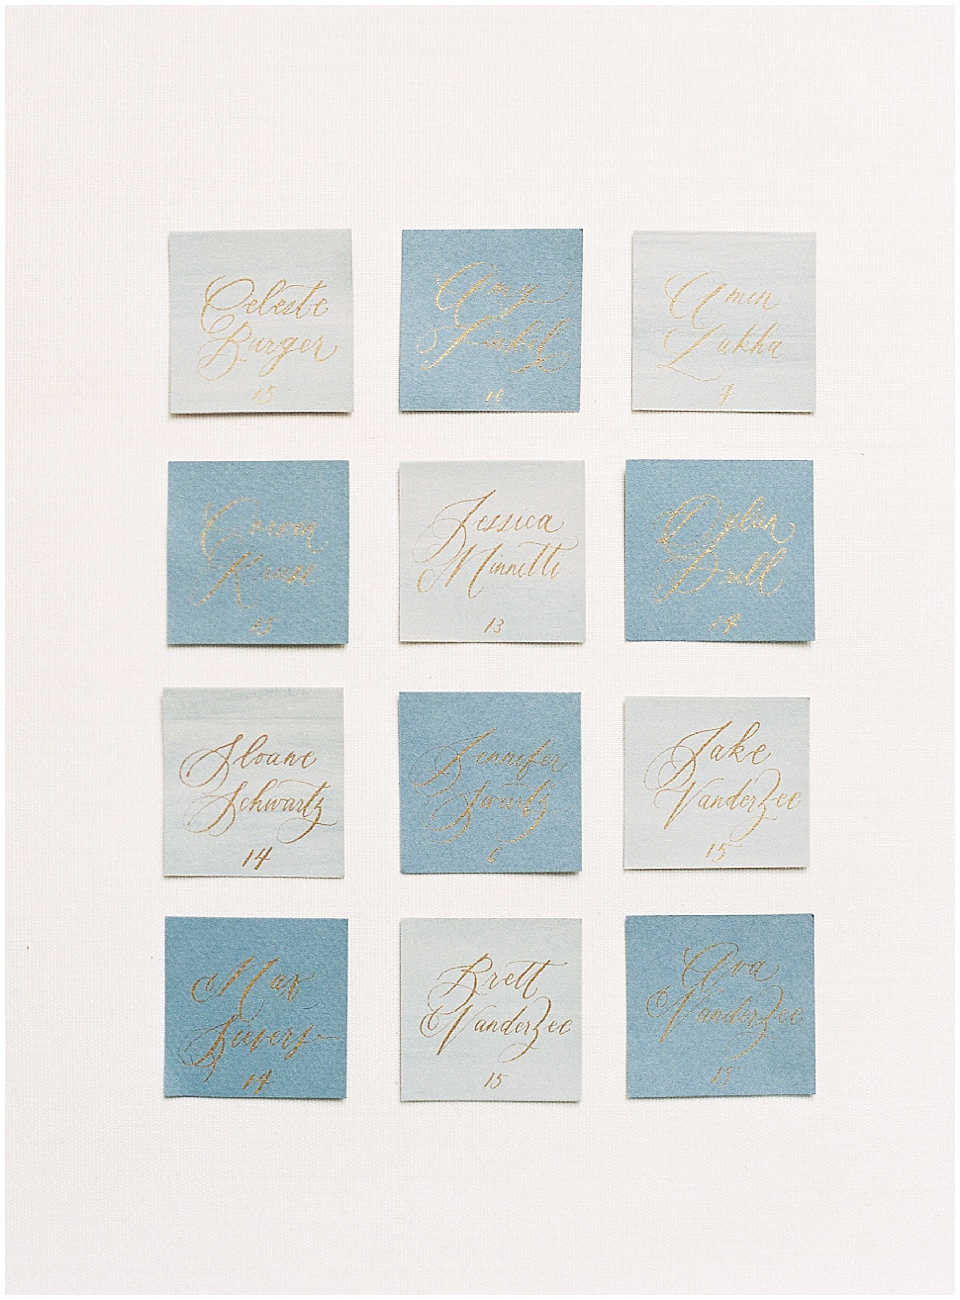 French paper suite | Light blue beige gold calligraphy stationary | escort cards | Joy Proctor Design | Written Word Calligraphy | French Wedding Inspiration | France Wedding | Destination Film Photographer | Paris Wedding | Fine Art Film Photographer | Whiskers and Willow Photography